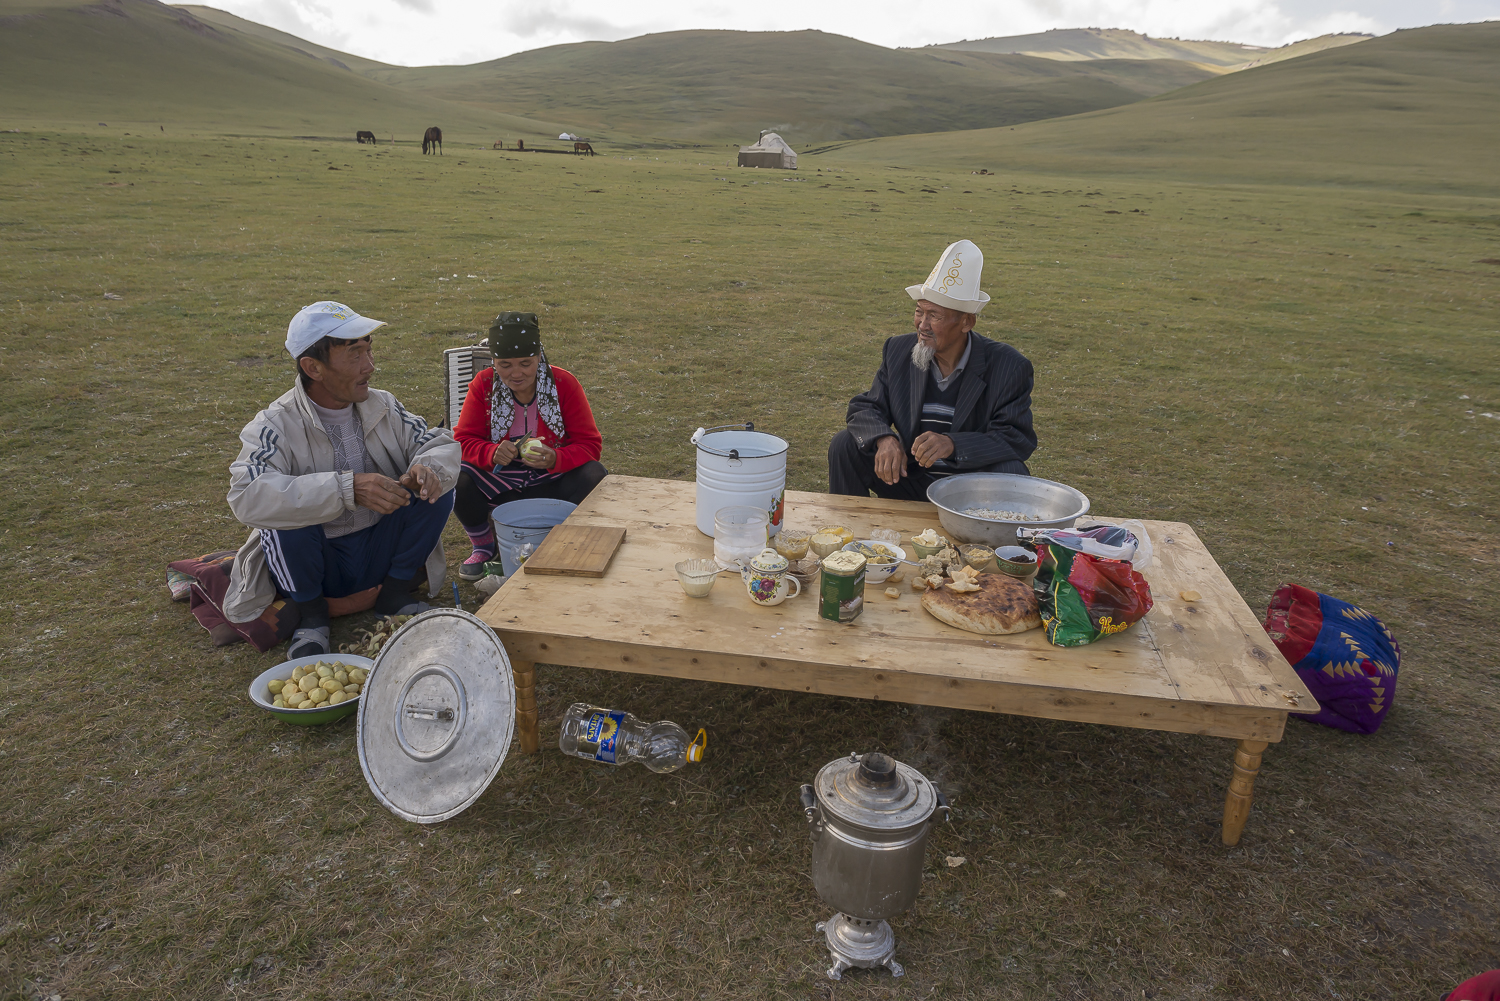 jo-kearney-photography-video-kyrgyzstan-nomads-family-eating-song-kul-lake.jpg